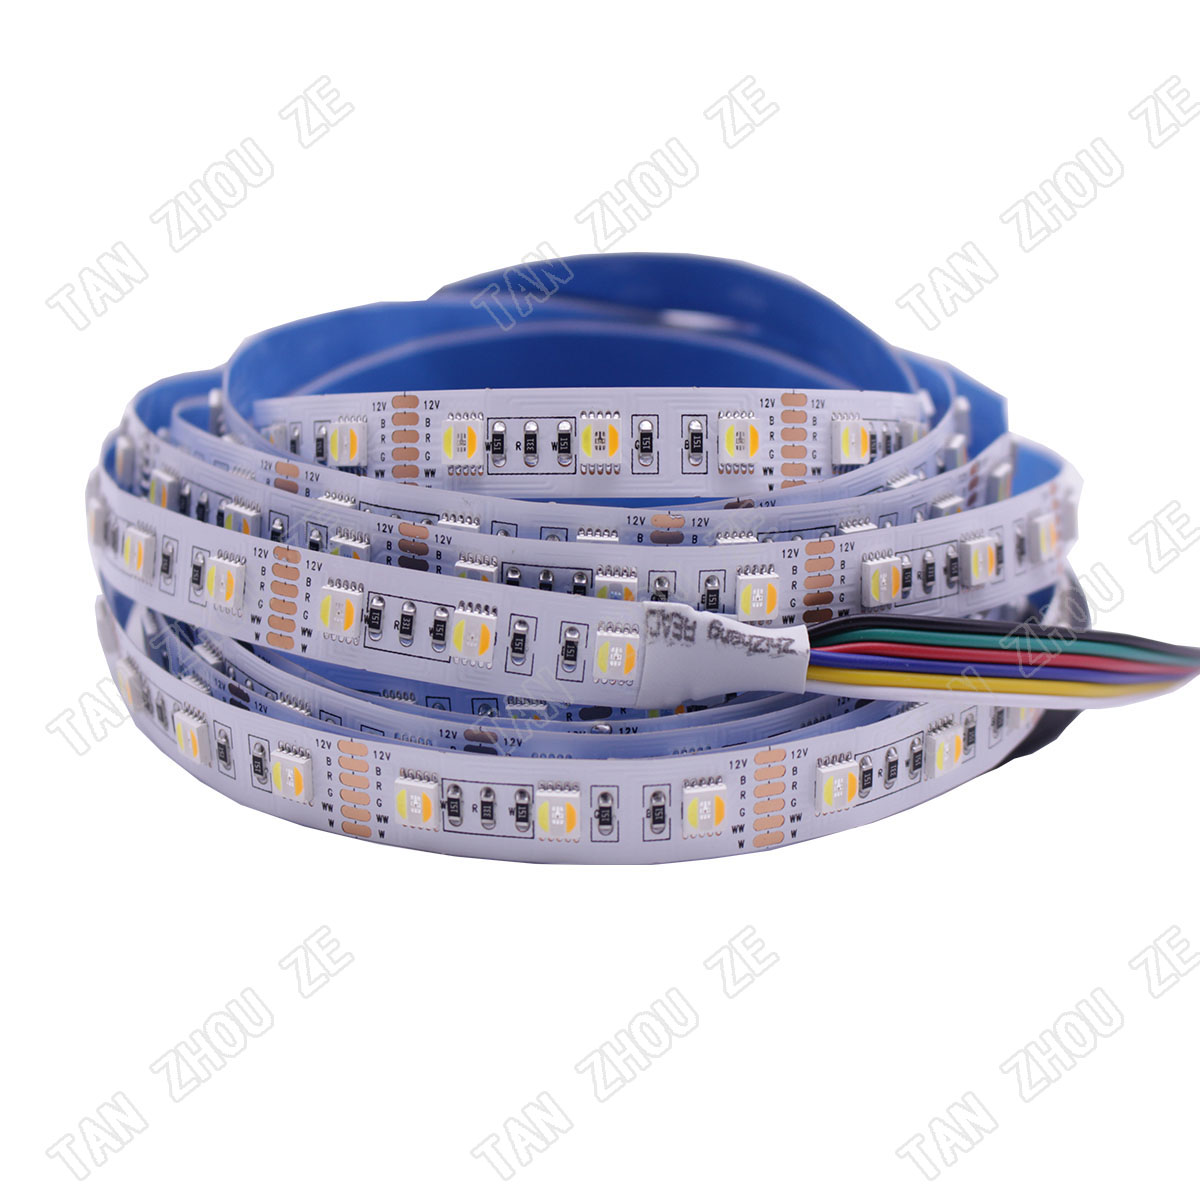 RGBCCT LED Strip 5050 12V / 24V 5 Color in 1 Chips RGB+WW+CW 60 LEDs/m 5m/lot RGBW LED Strip Light 5m/lot 12MM PCB 300LEDs/5m image